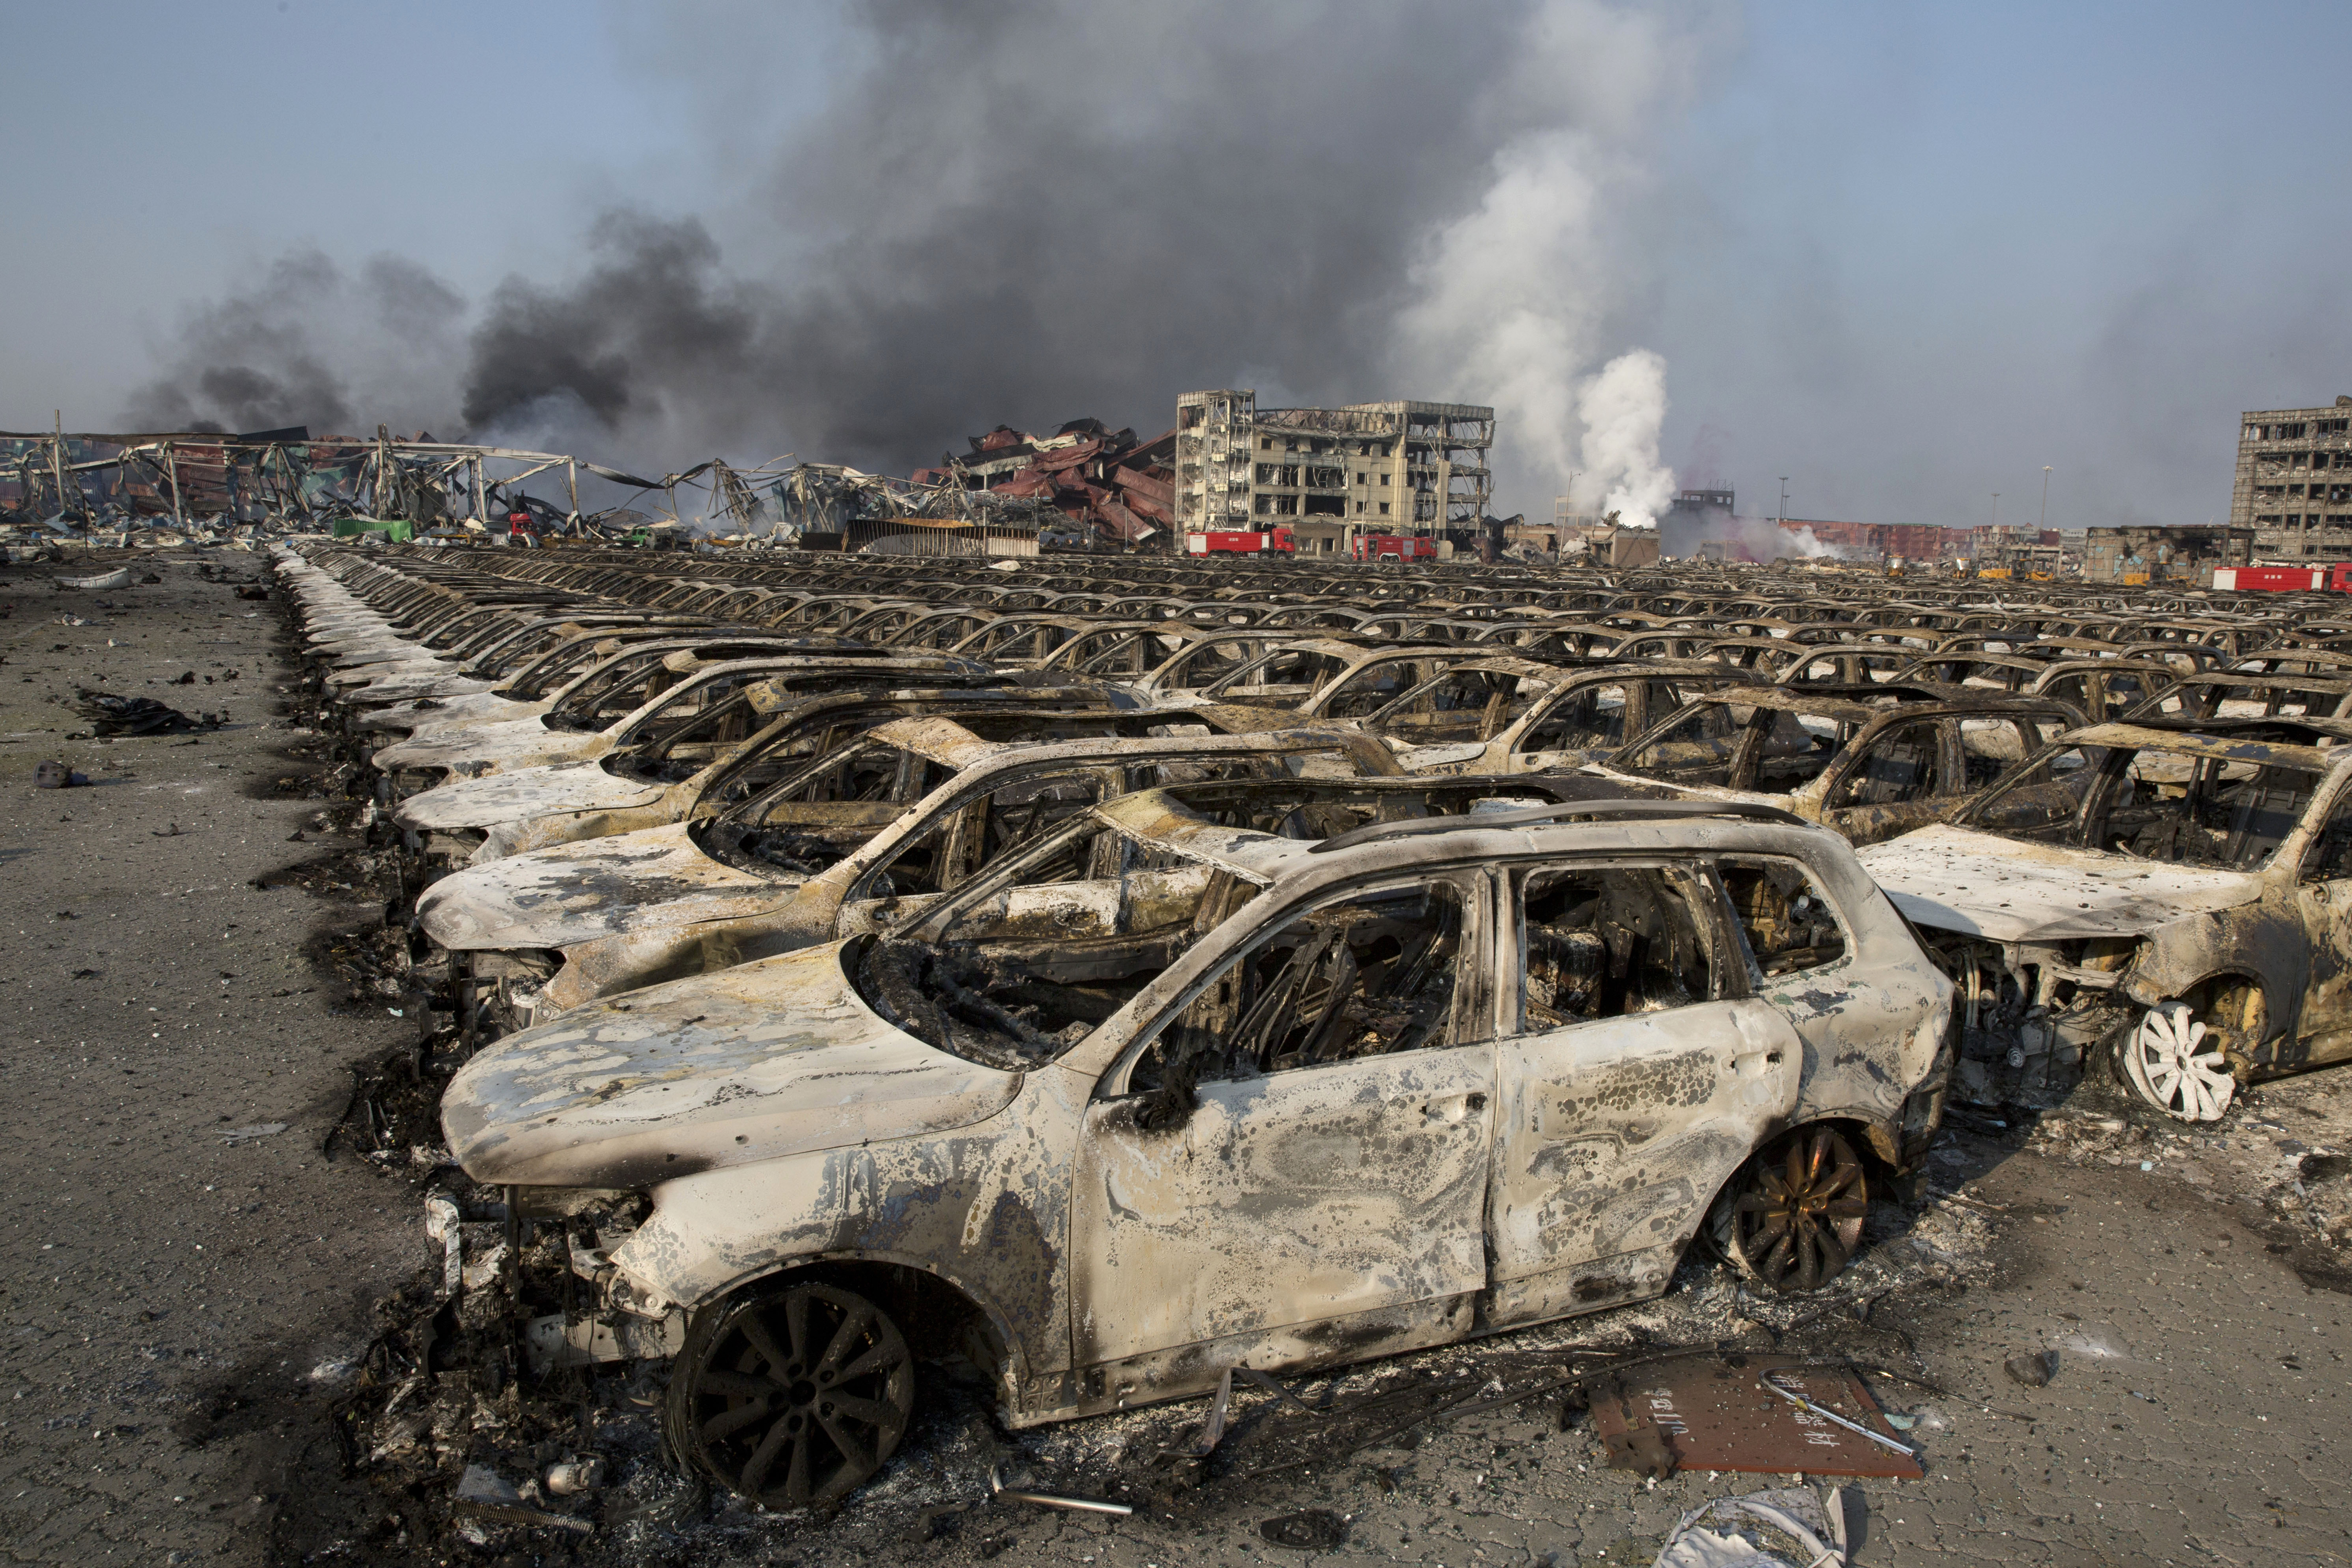 Tianjin Blast Reverberates Through Chinese Regime